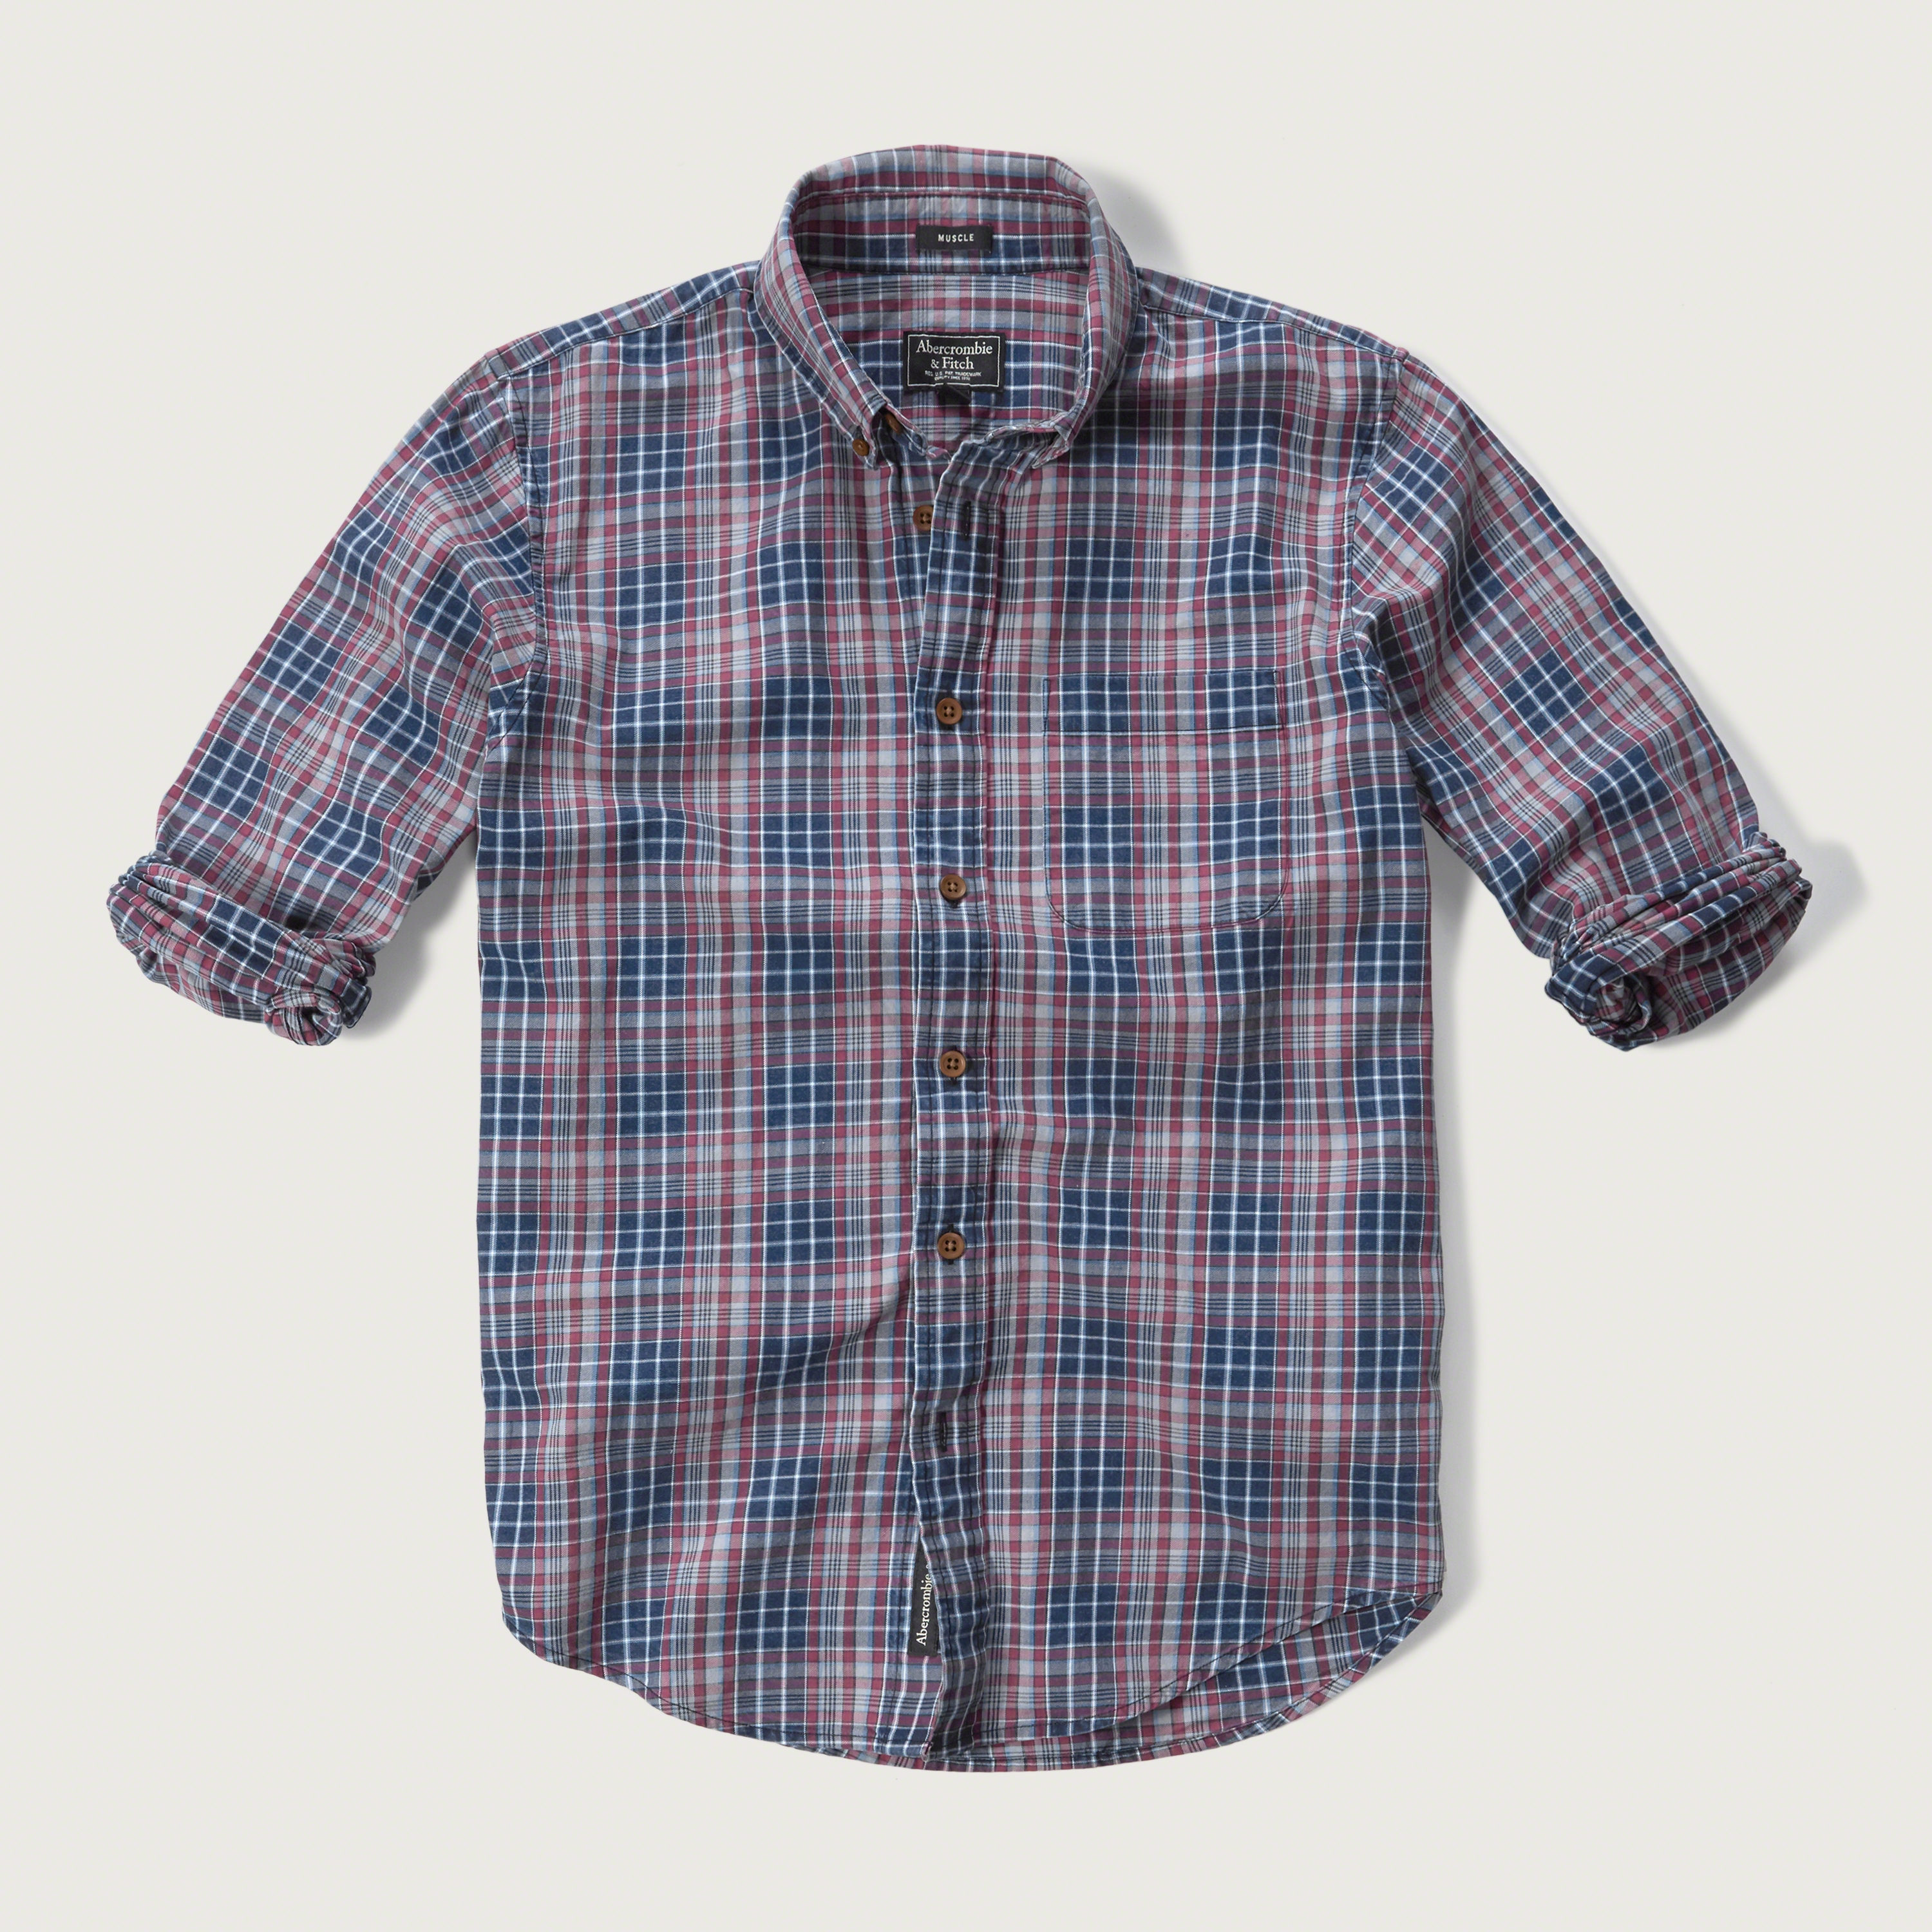 lyst abercrombie amp fitch plaid textured shirt in blue